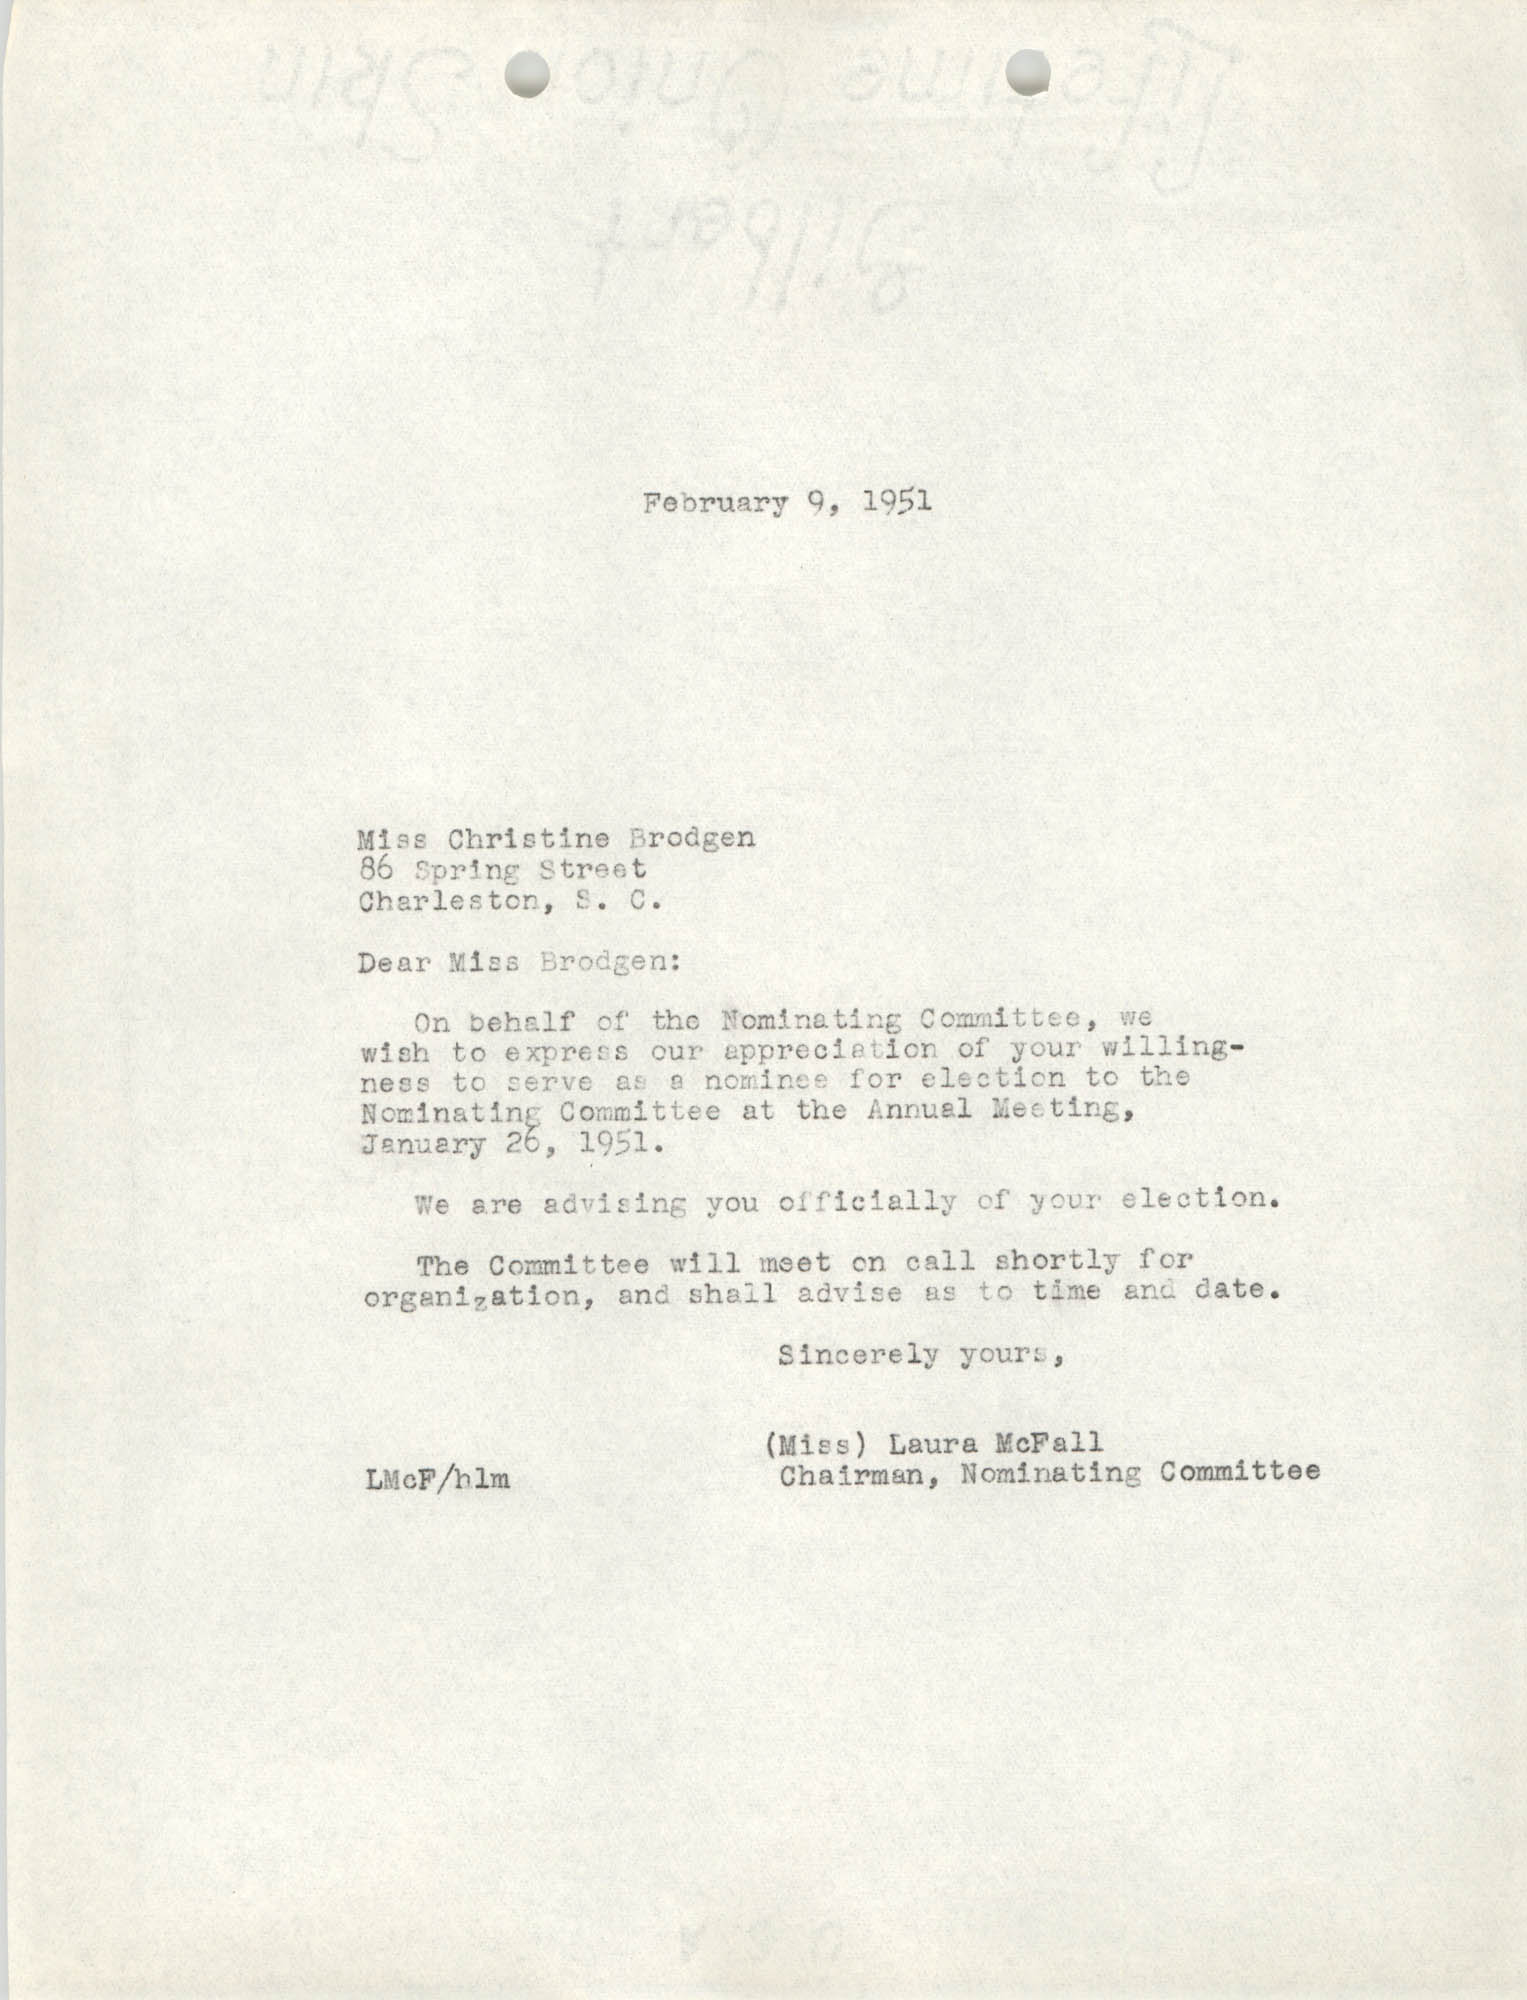 Letter from Laura McFall to Christine Brodgen, February 9, 1951